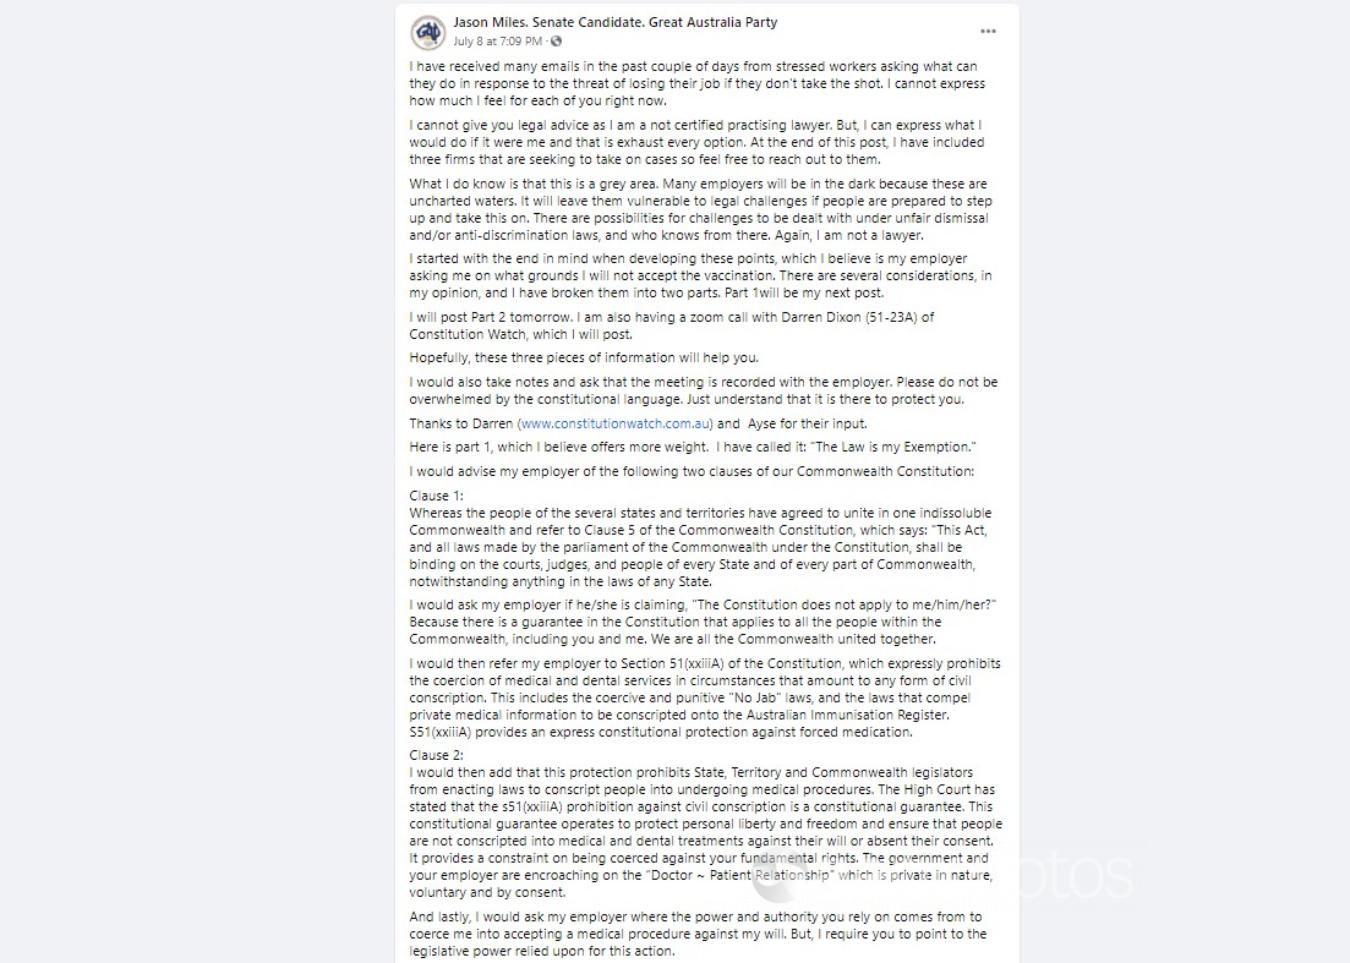 A Facebook post including the claim